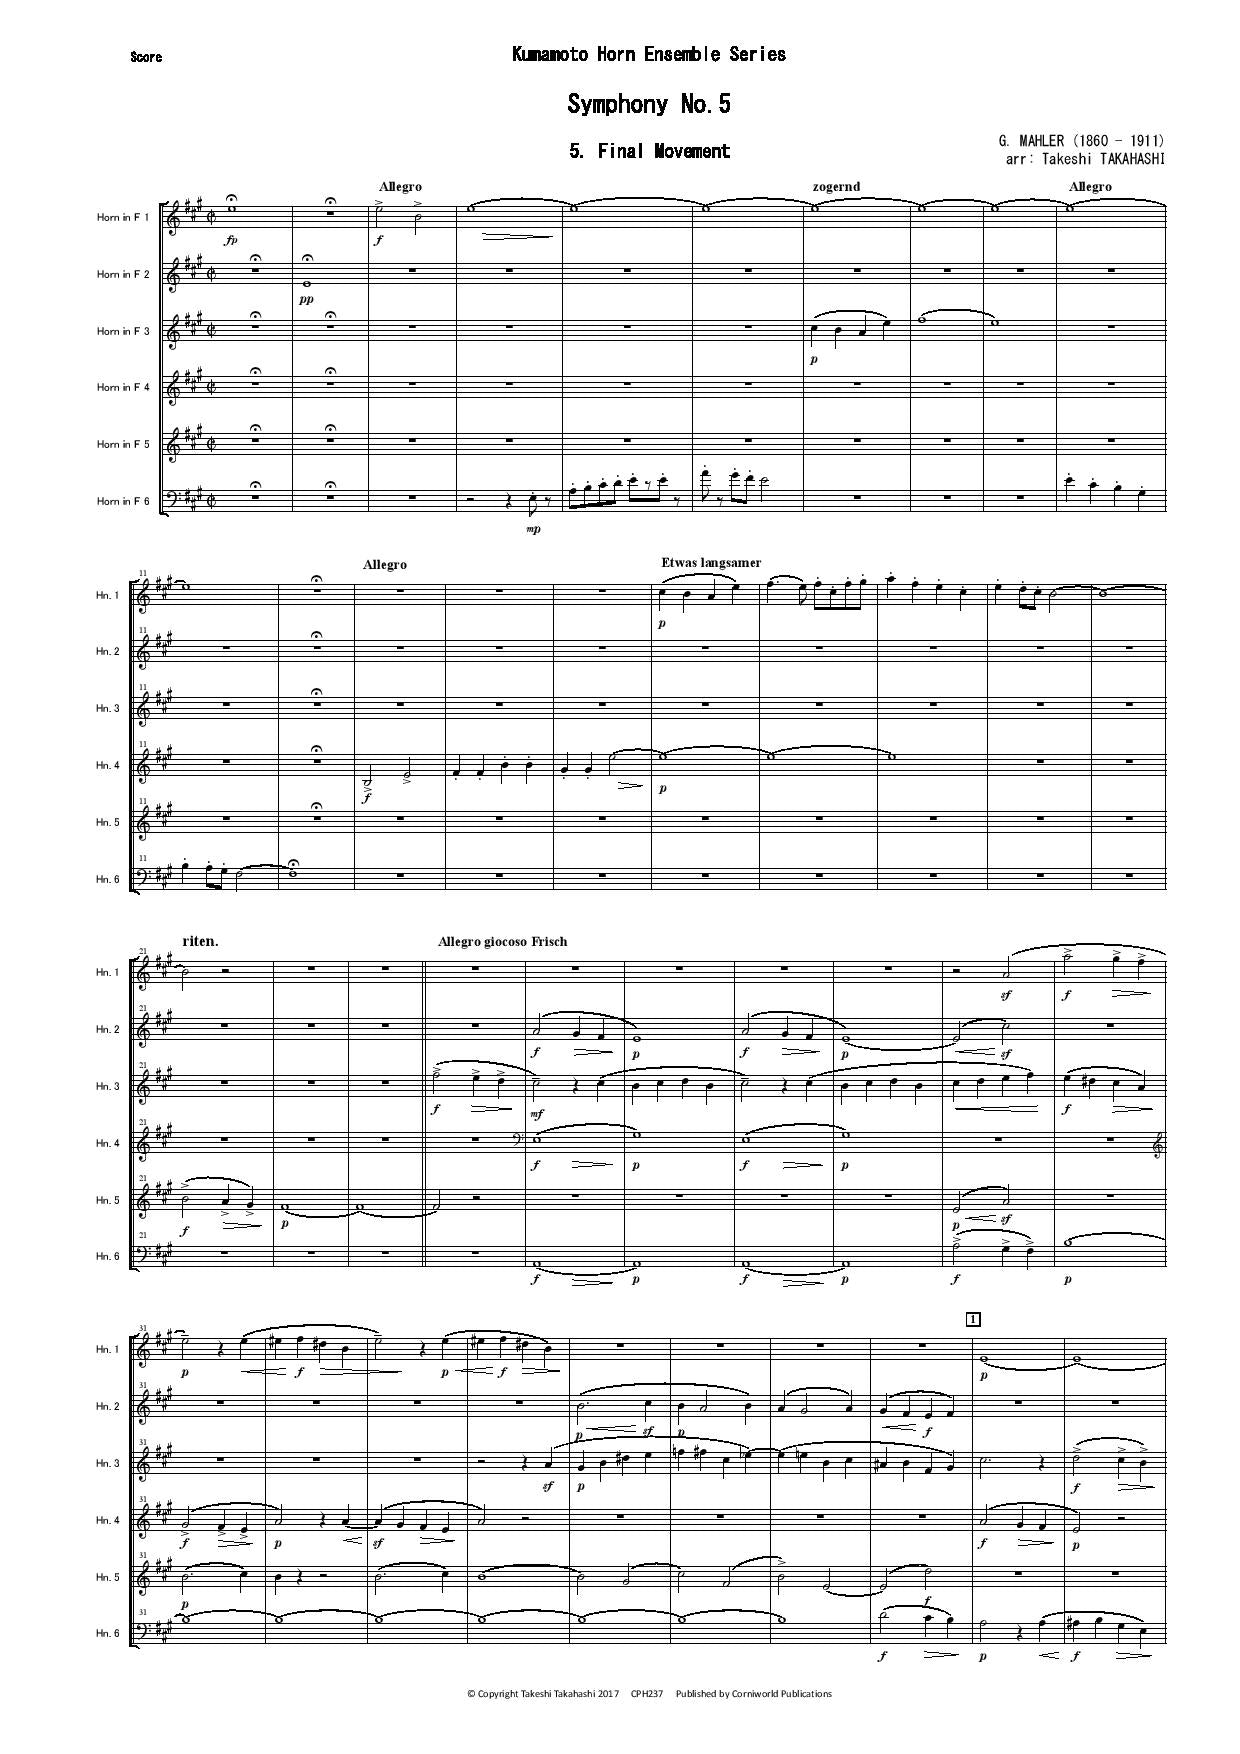 Final Mvt from Symphony No.5 (Mahler) CPH237